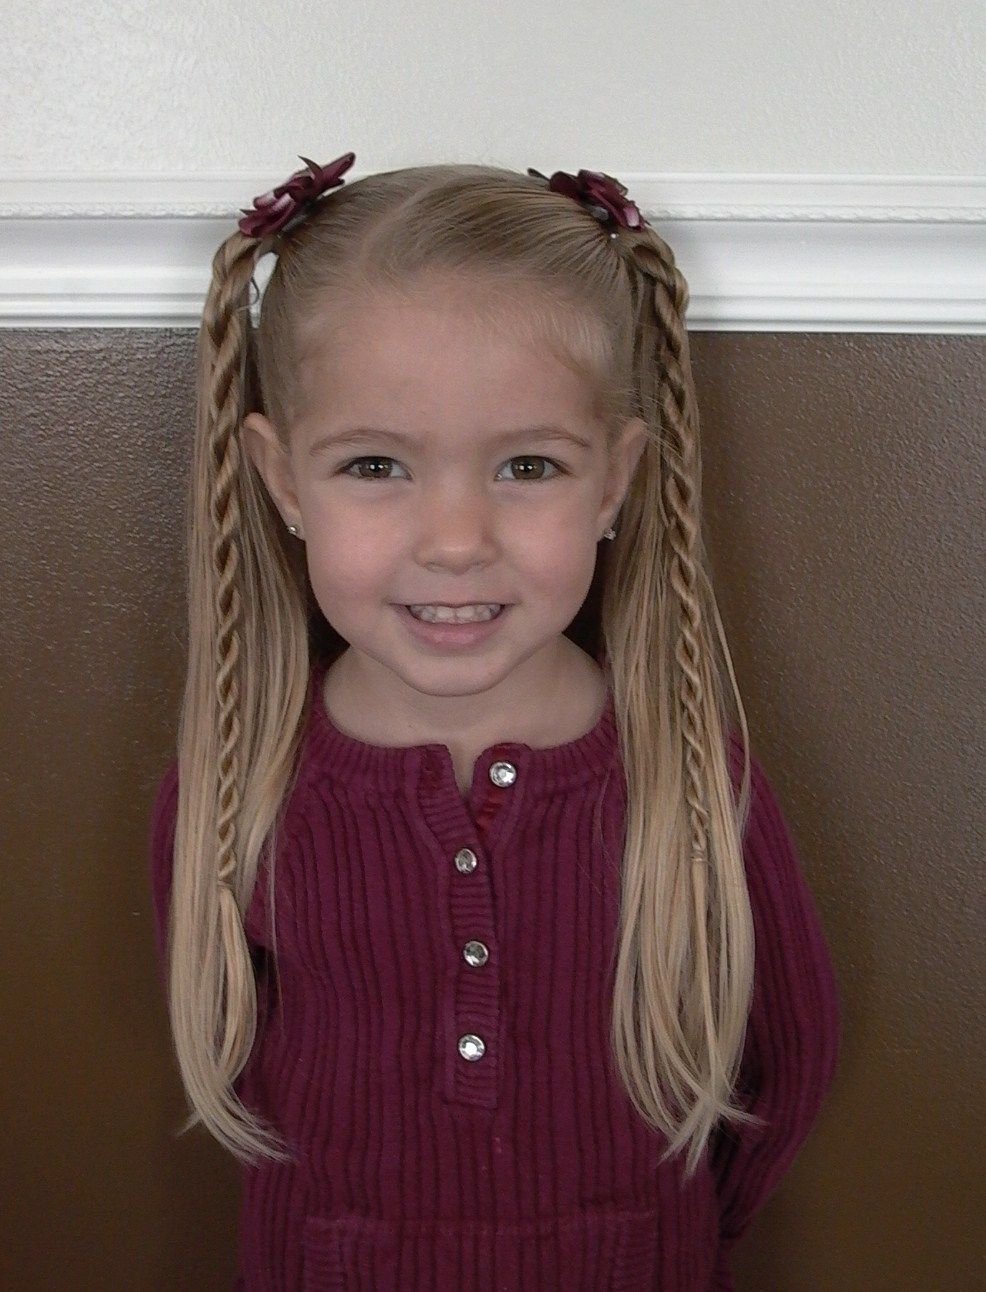 Hairstyles For Kids Girls Captivating 7 Girls Hairstyles For Back To School  Hair  Pinterest  Girl